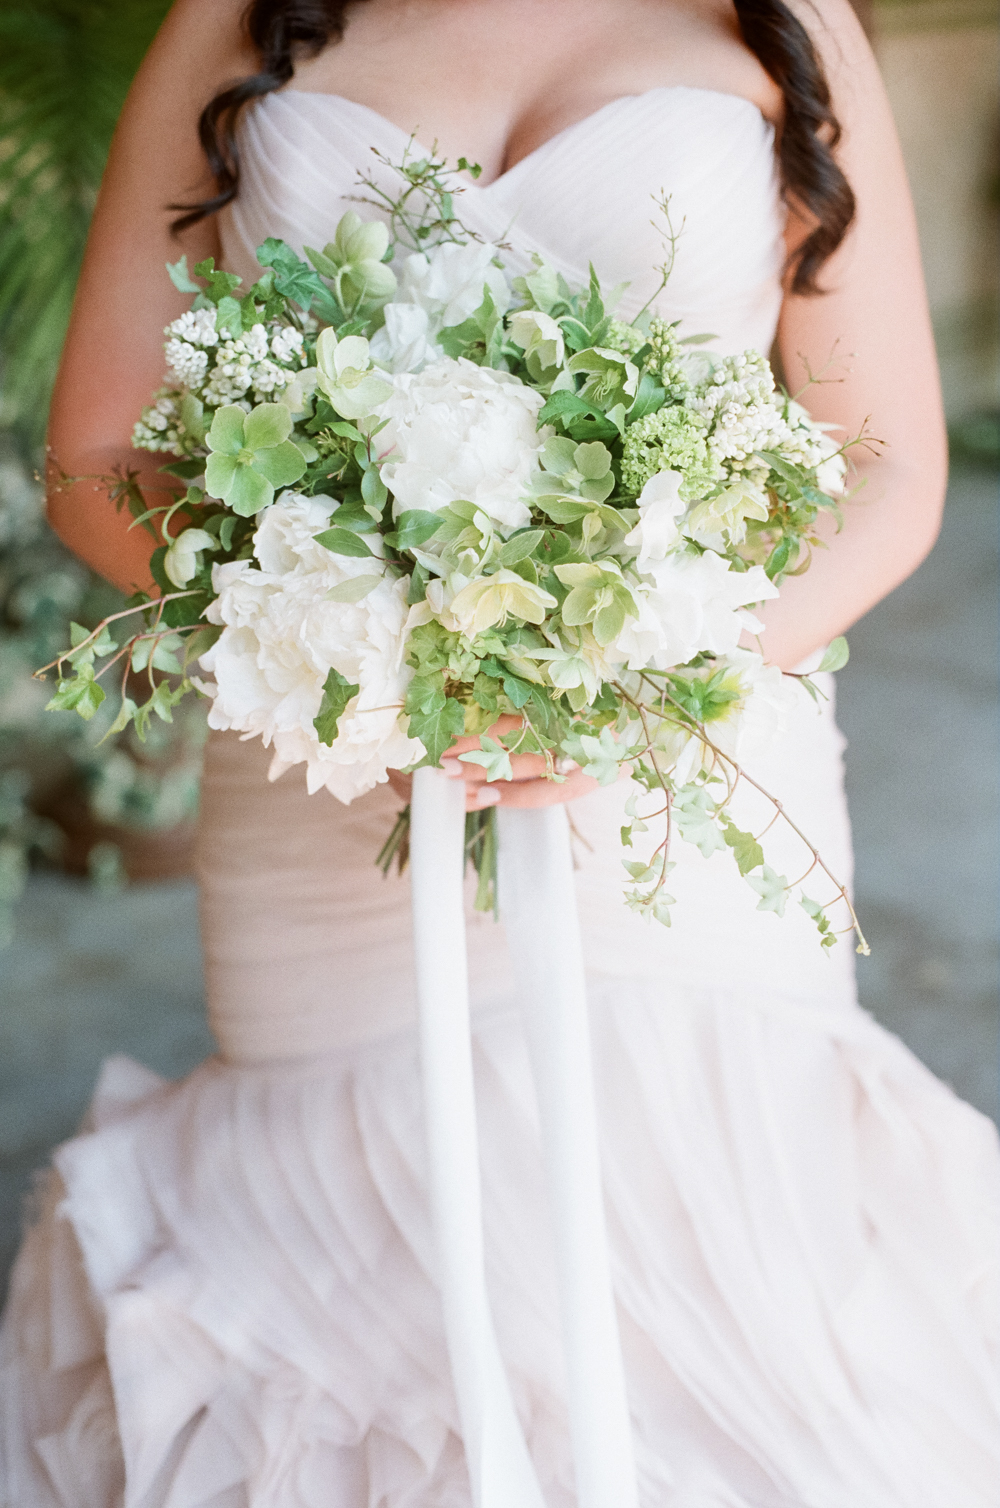 houston-bridal-session-film-photographer-white-bouquet-college-park-flowers-christine-gosch-03.jpg